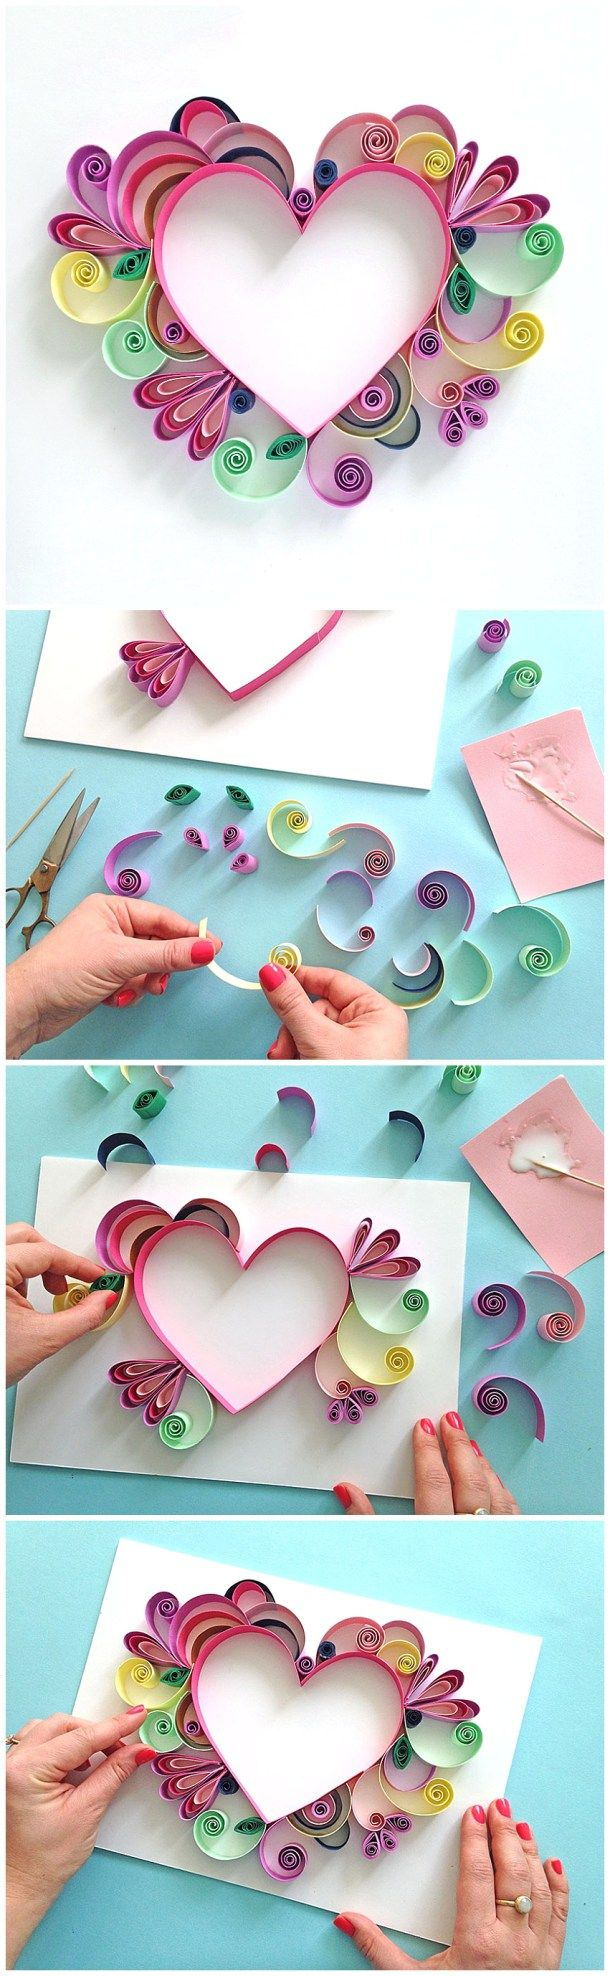 The BEST Easy DIY Mother's Day Gifts and Treats Ideas – Holiday Craft Activity Projects, Free Printables and Favorite Brunch Desserts Recipes for Moms and Grandmas – Dreaming in DIY